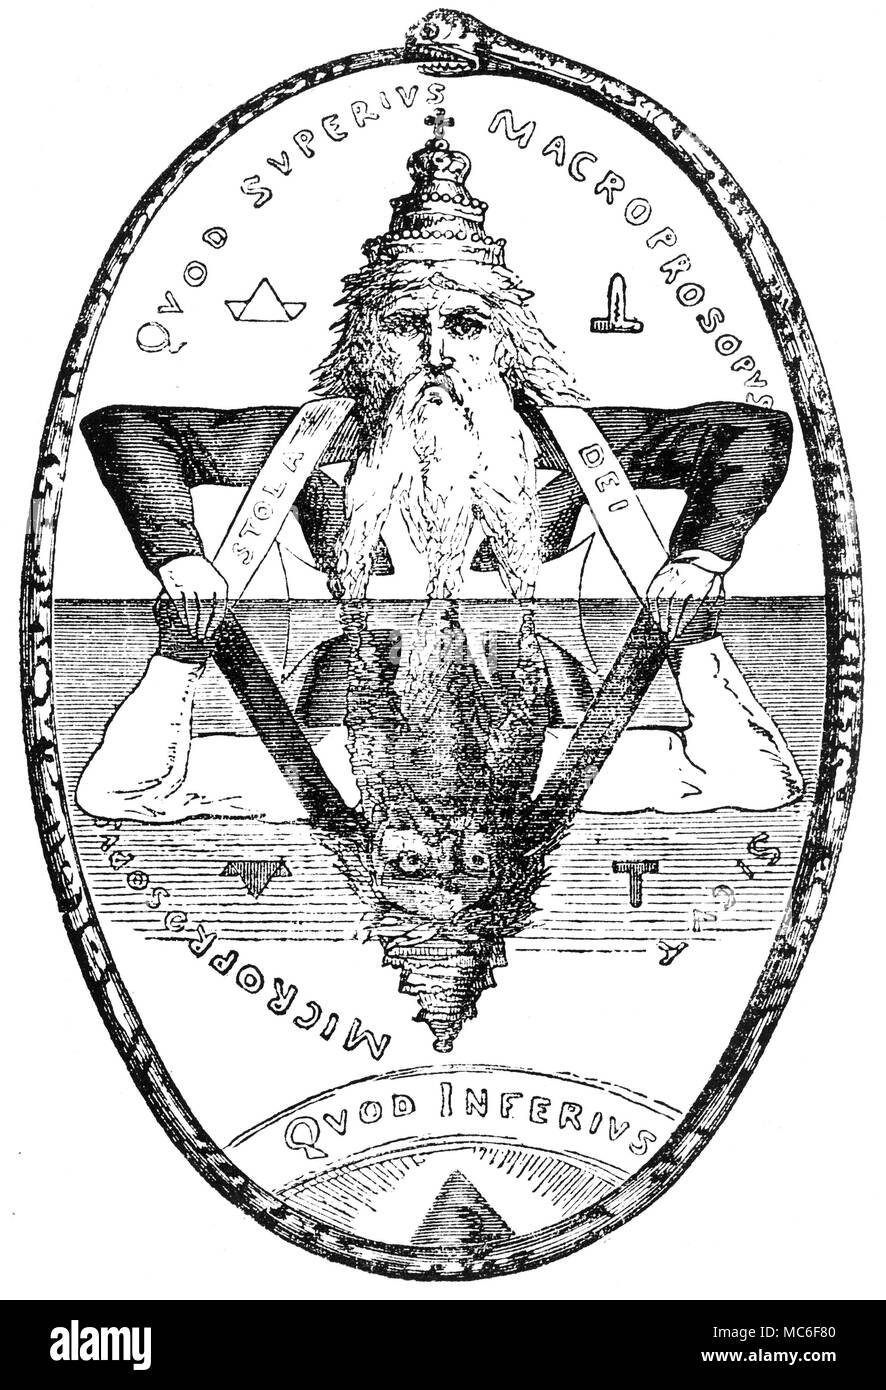 Macrocosm and microcosm entwined in Seal of Solomon